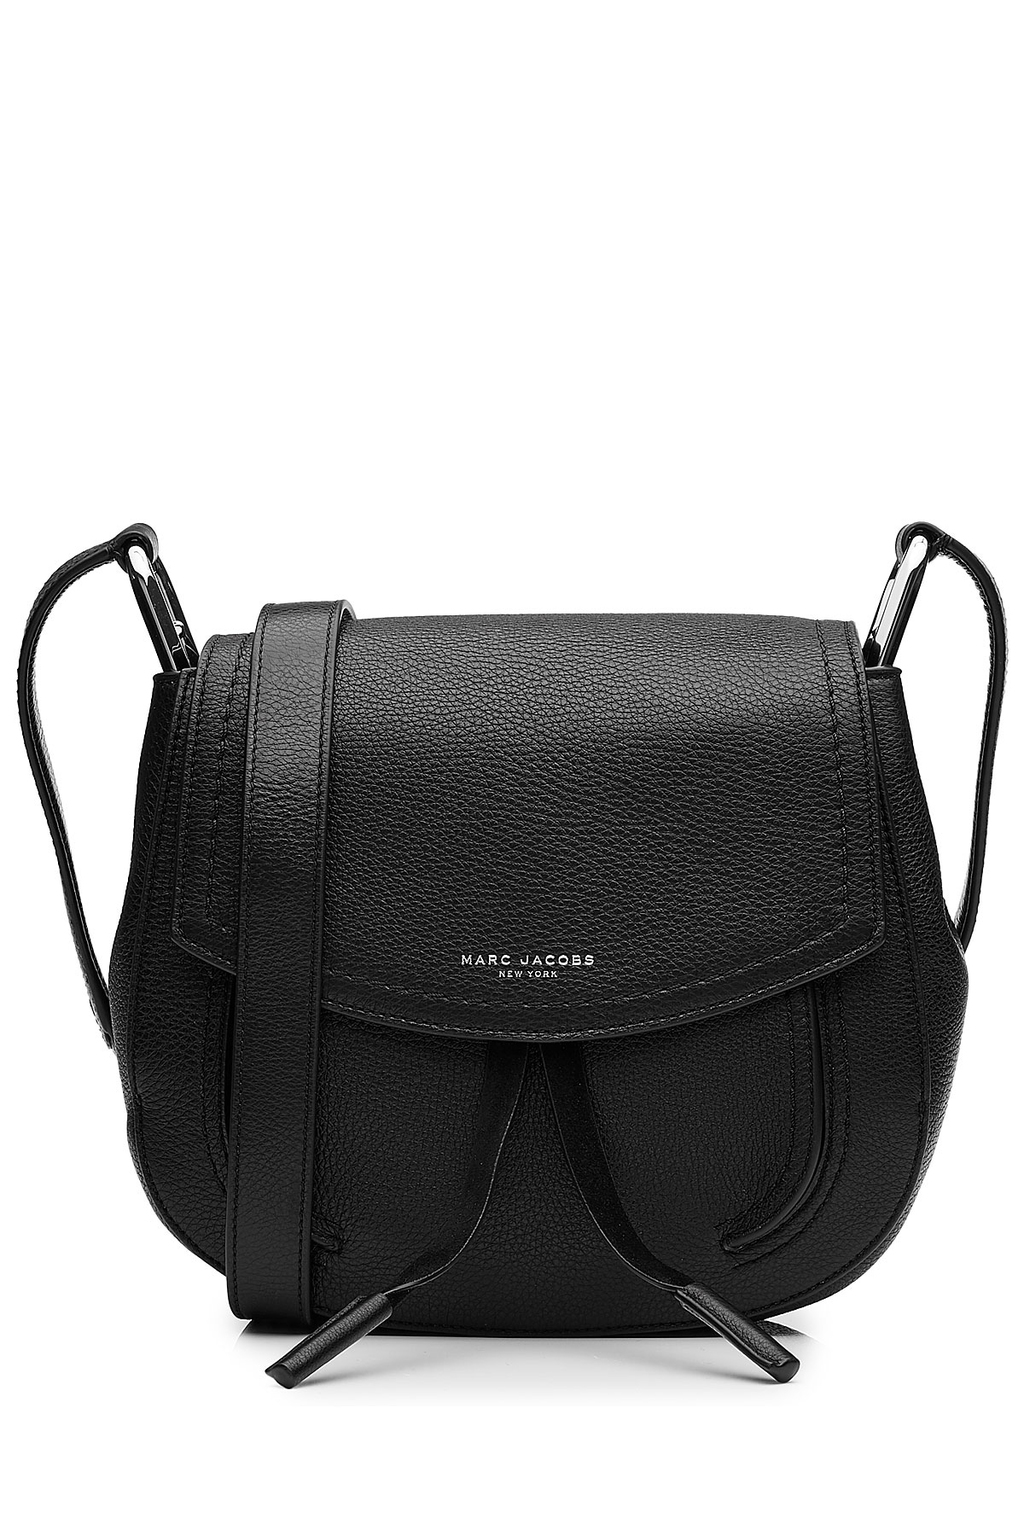 Leather Shoulder Bag Black - predominant colour: black; occasions: casual, work, creative work; type of pattern: standard; style: shoulder; length: across body/long; size: standard; material: leather; pattern: plain; finish: plain; season: a/w 2016